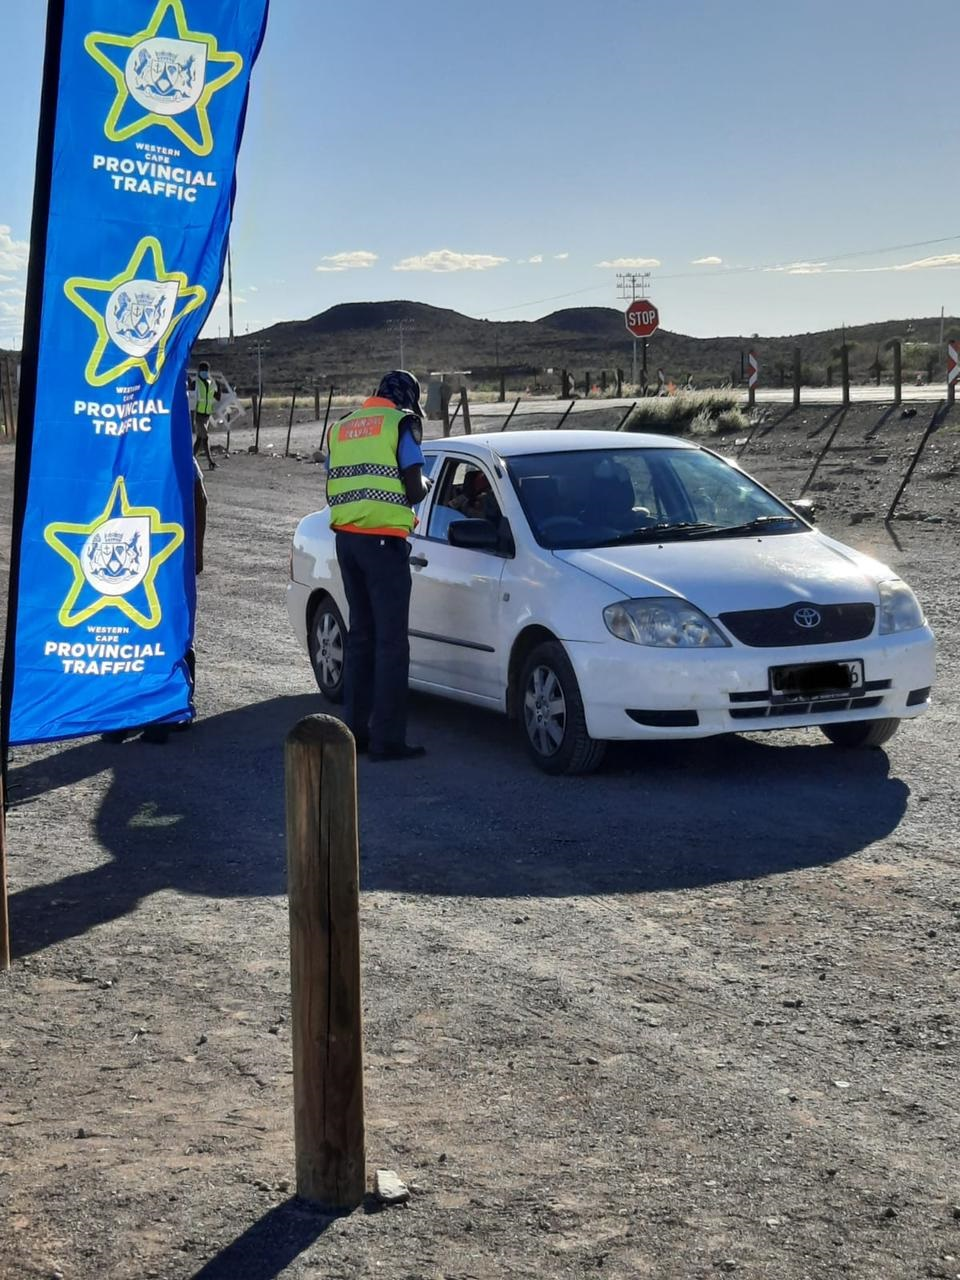 Traffic officials in the Western Cape have been pl